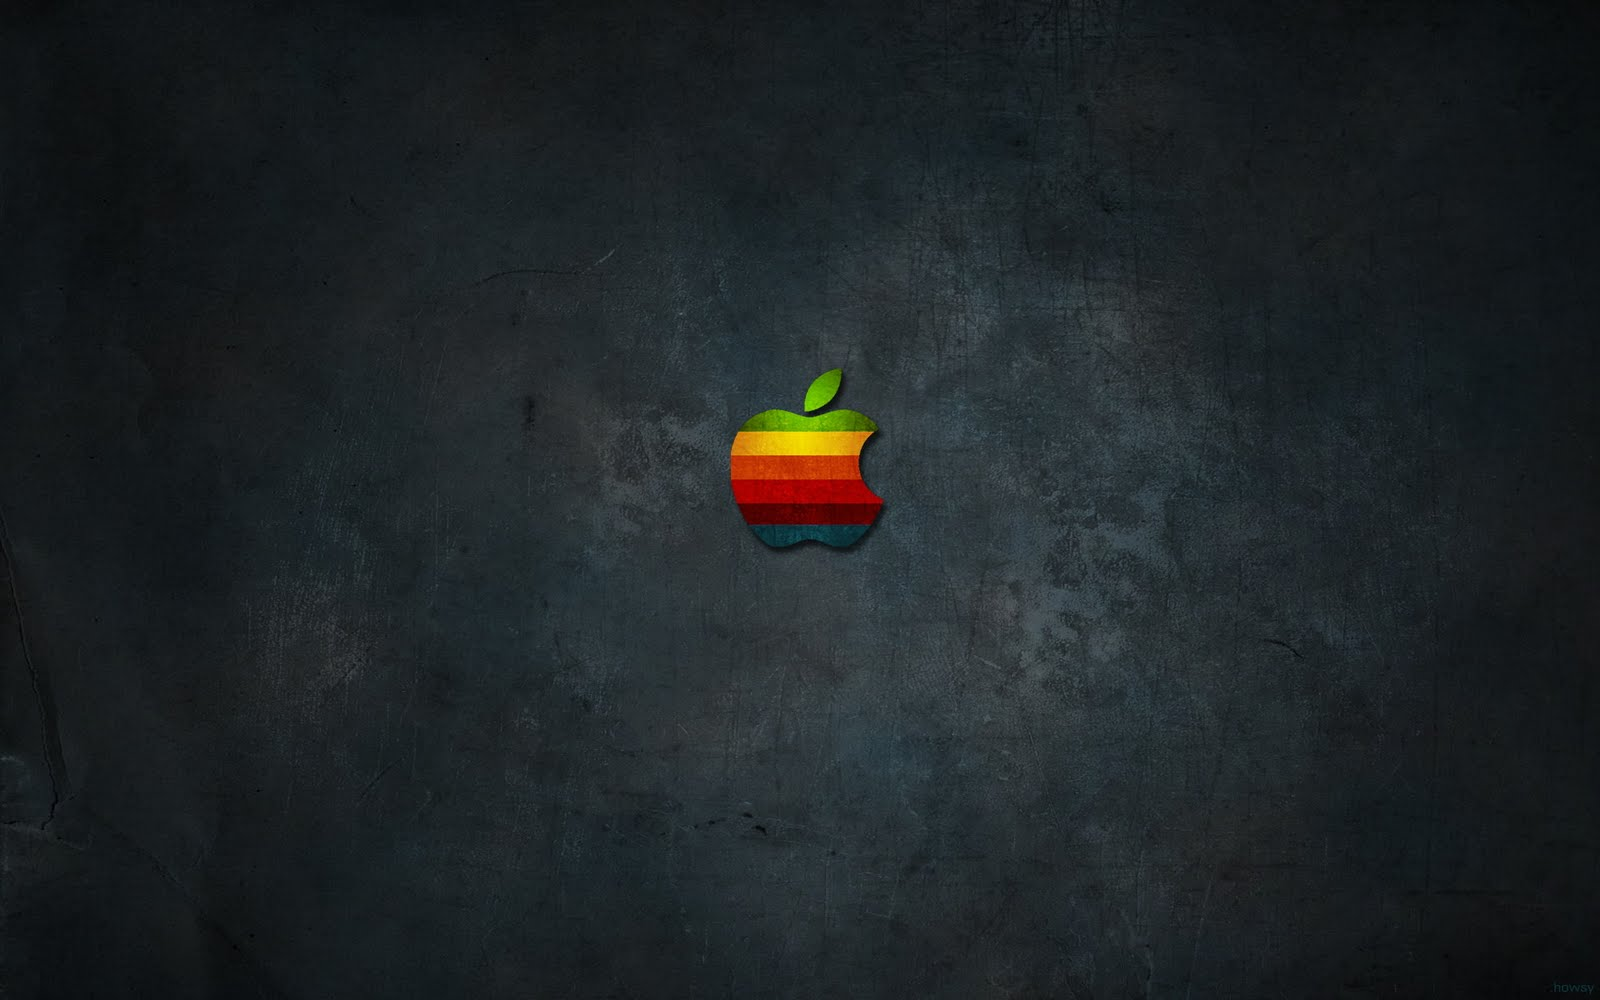 Colored logo and Apple Mac wallpaper Hd Wallpaper 1600x1000